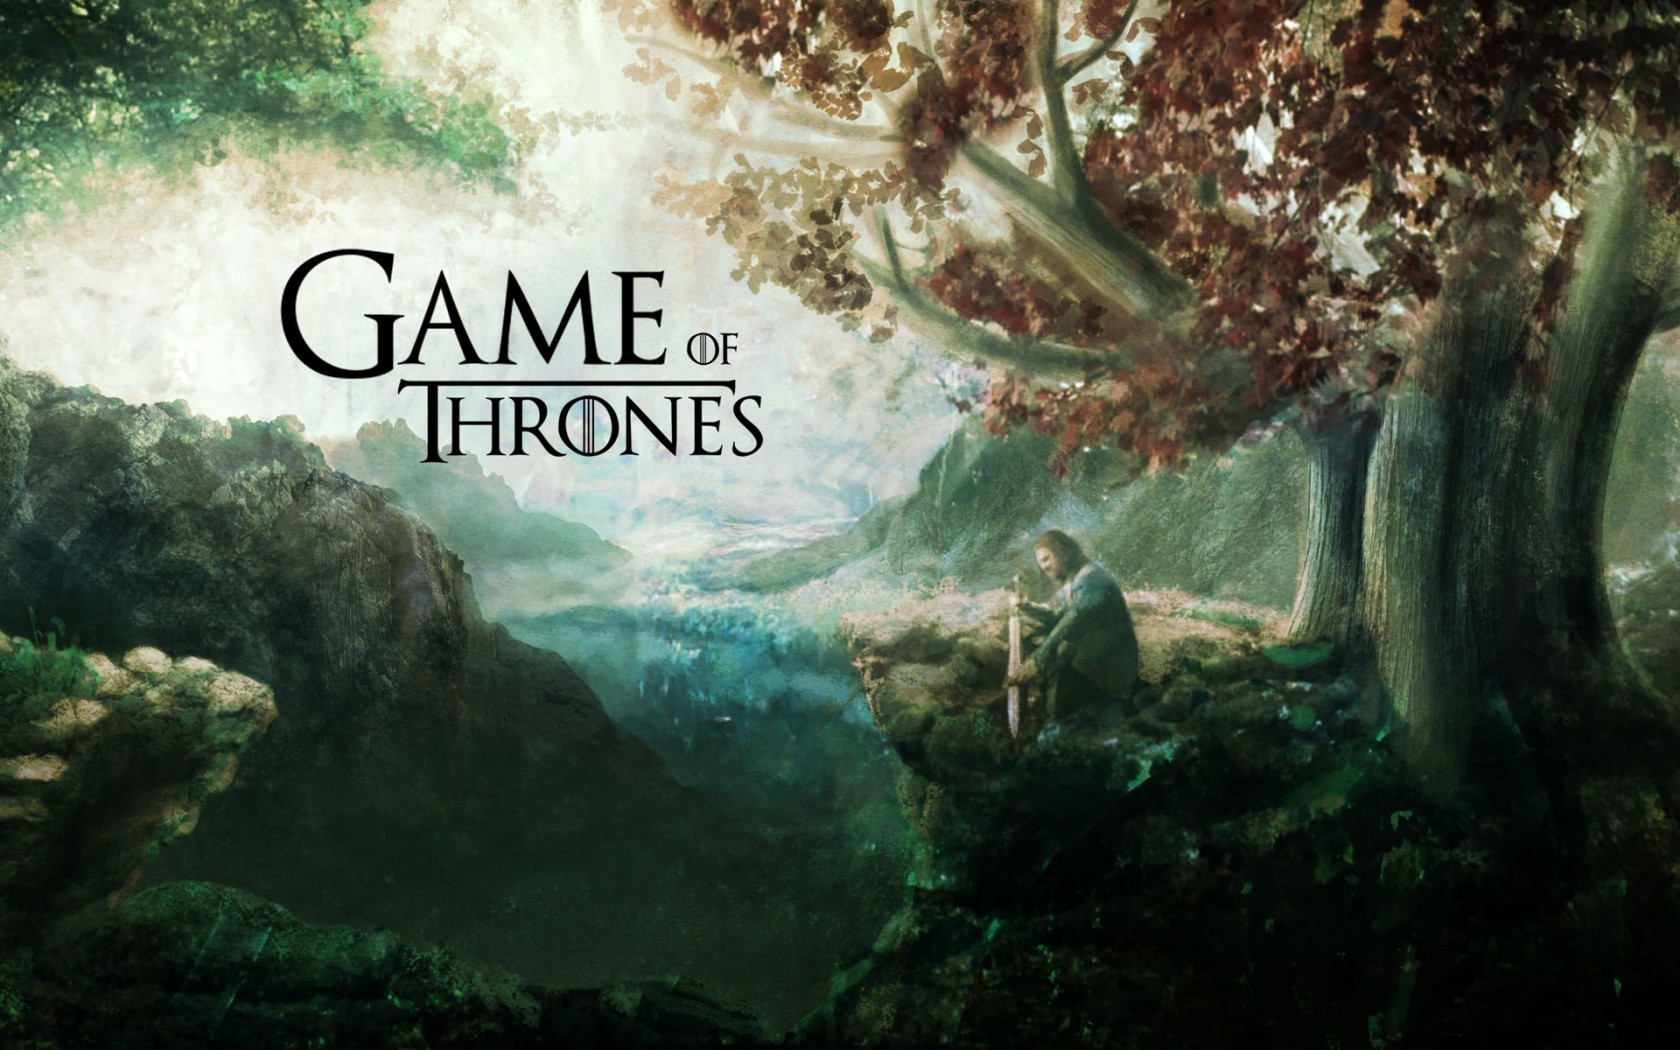 game of thrones hd wallpapers game of thrones hd wallpapers 1680x1050